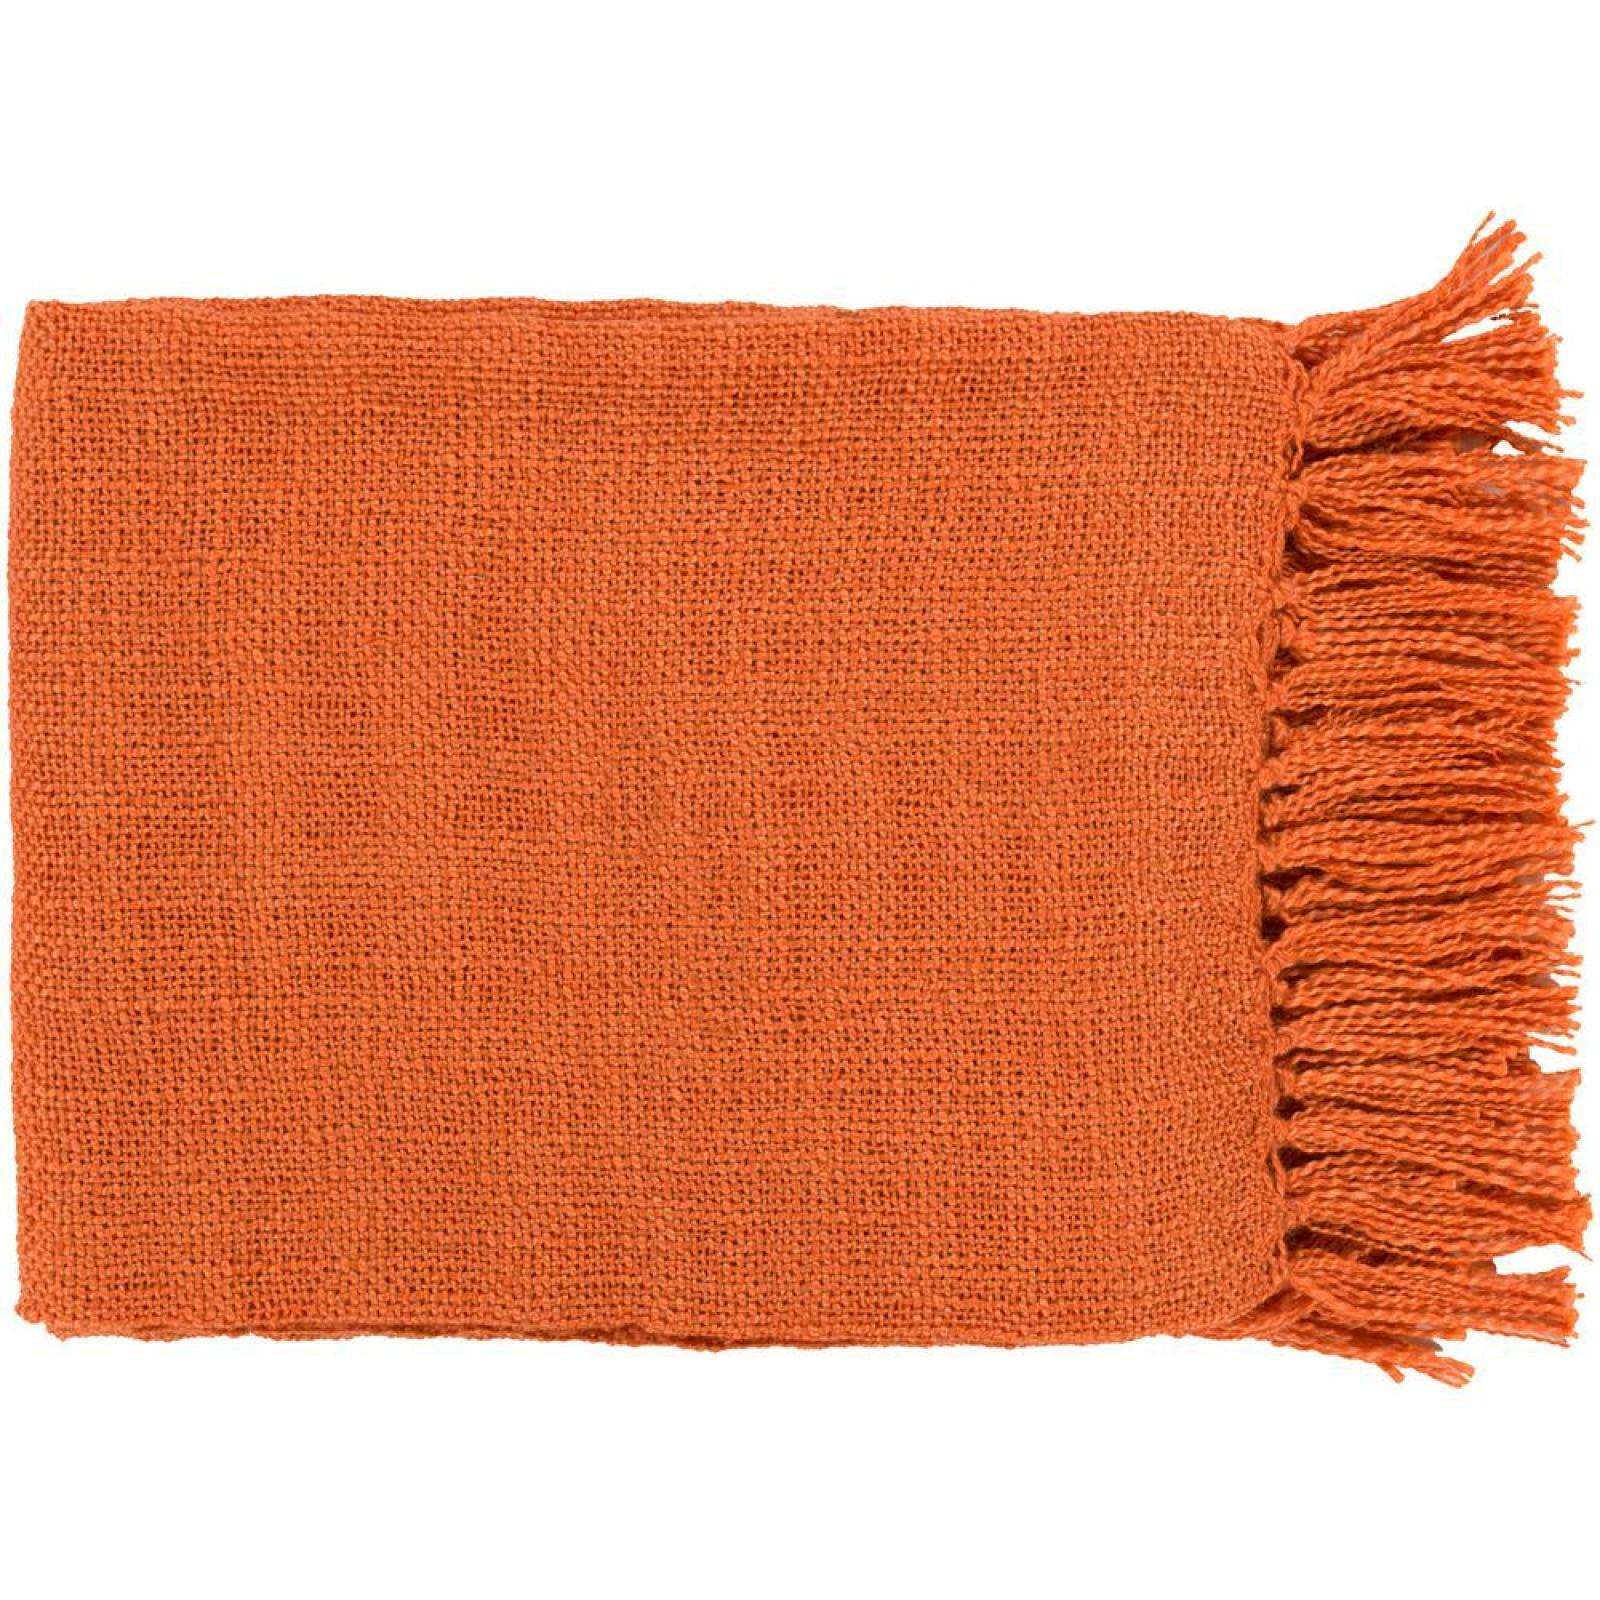 Throw Blanket 100% Acrylic Burnt orange Solid Knit Tassel Warm Artistic Weavers